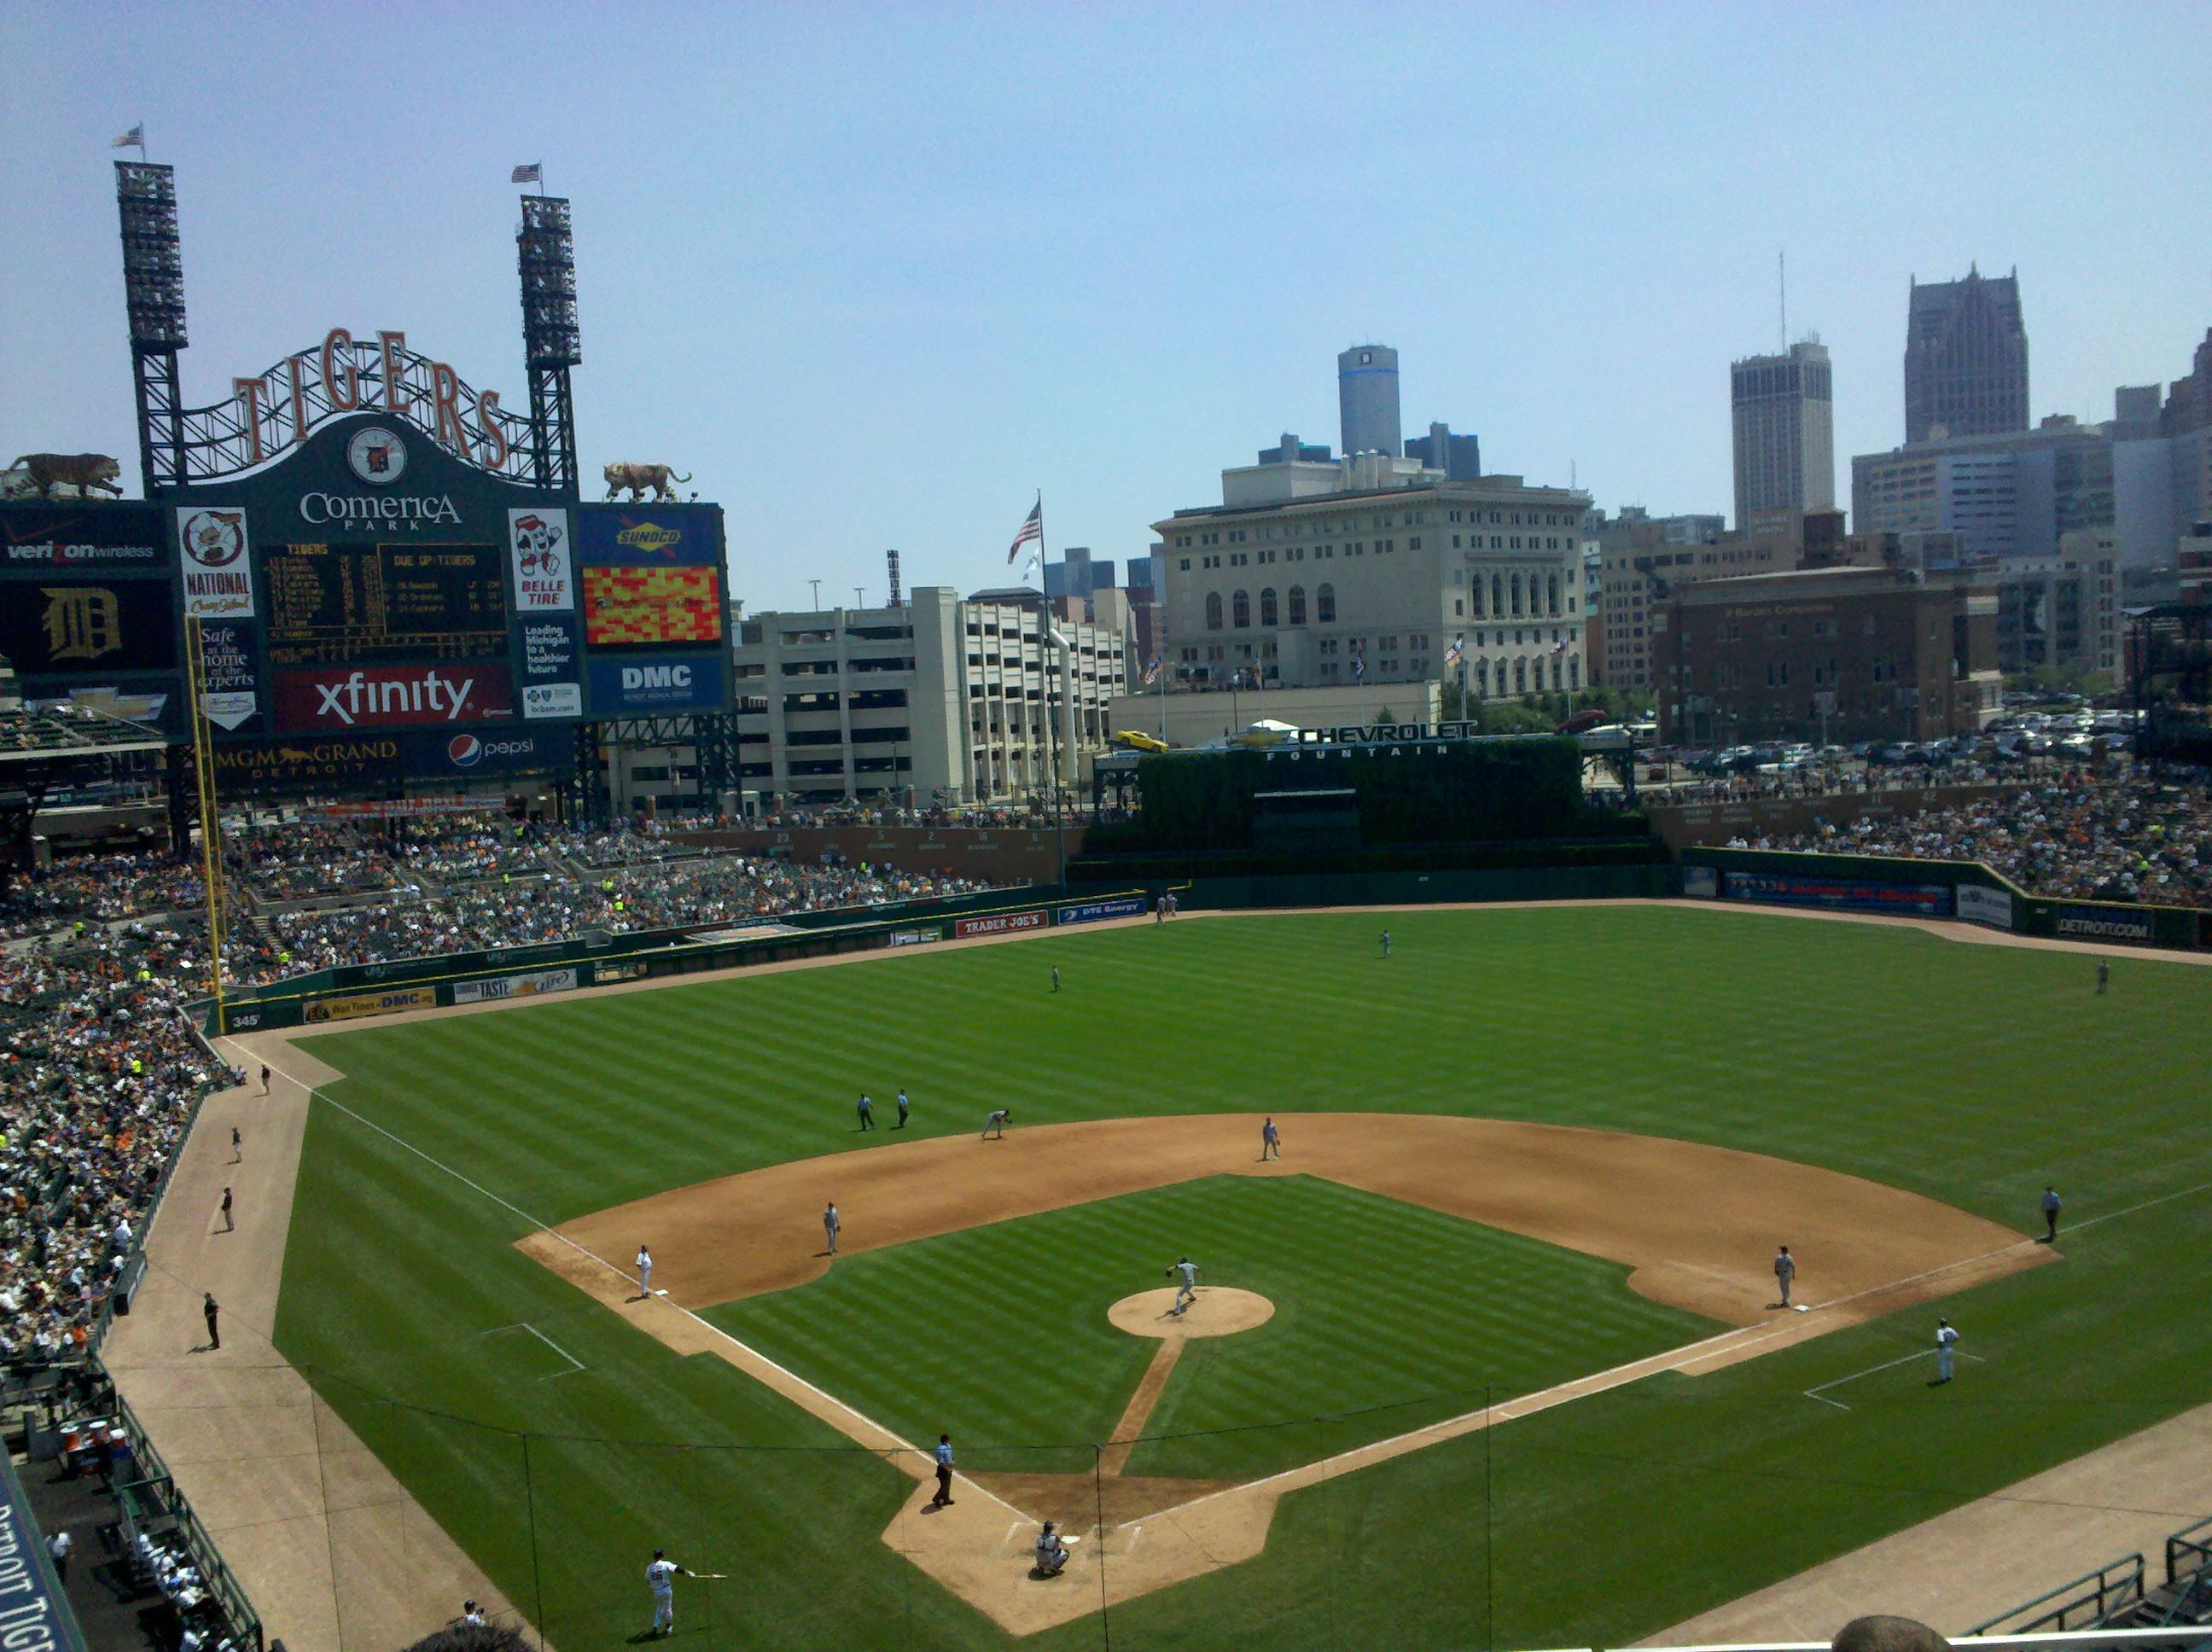 Comerica Park Section 326 Row 4 Seat 12